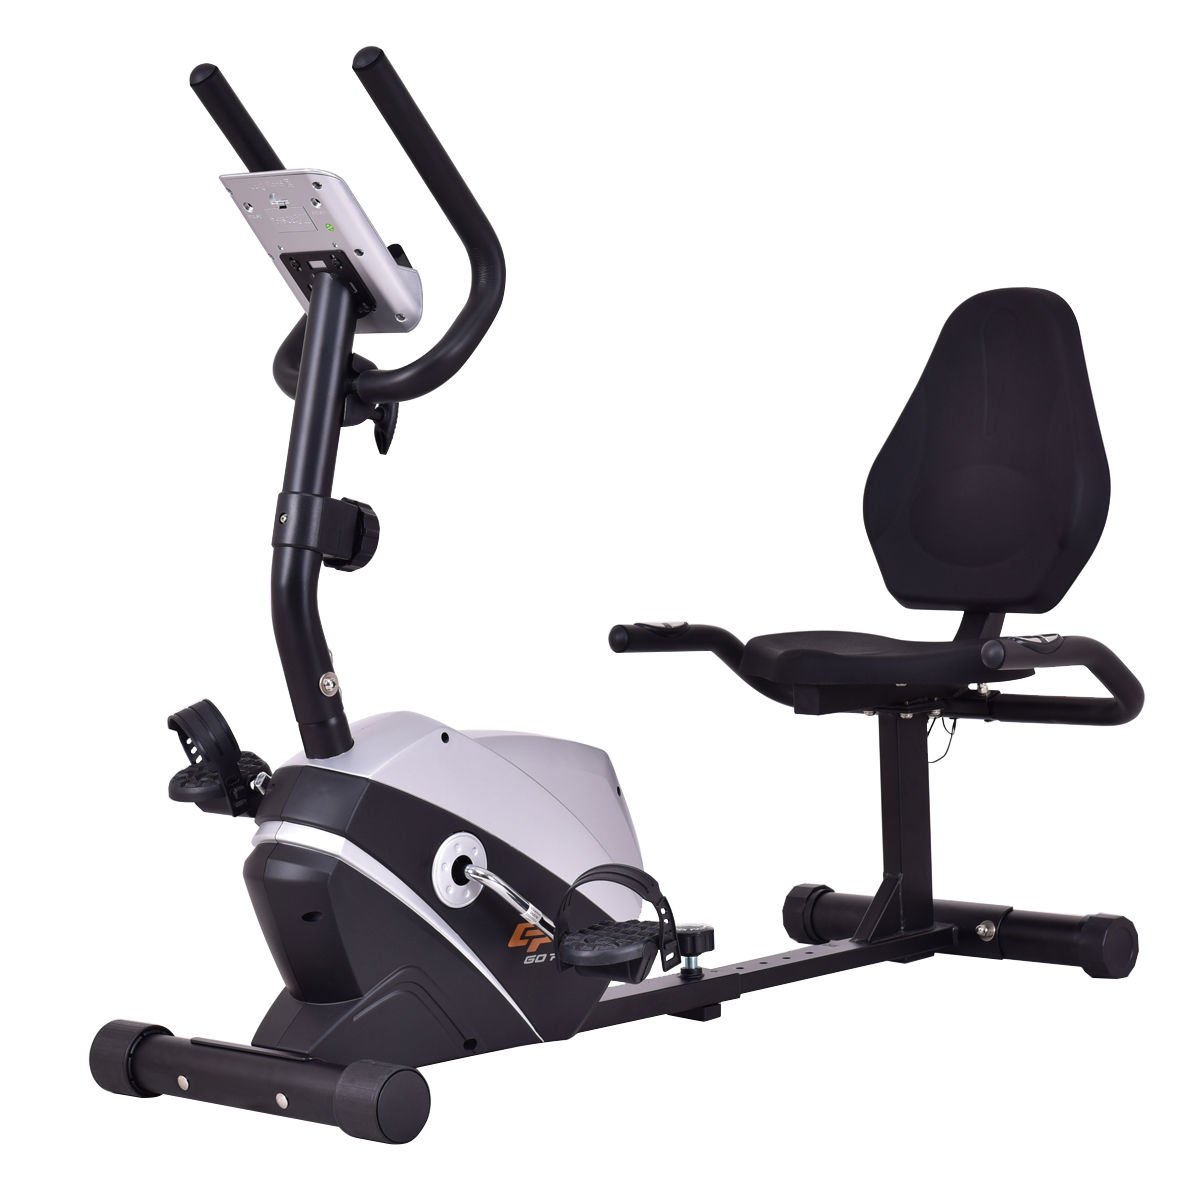 f4968ef05f4 Get Quotations · Goplus Magnet Recumbent Bike Exercise Bike Stationary  Bicycle Cardio Workout Fitness Bicycle Equipment